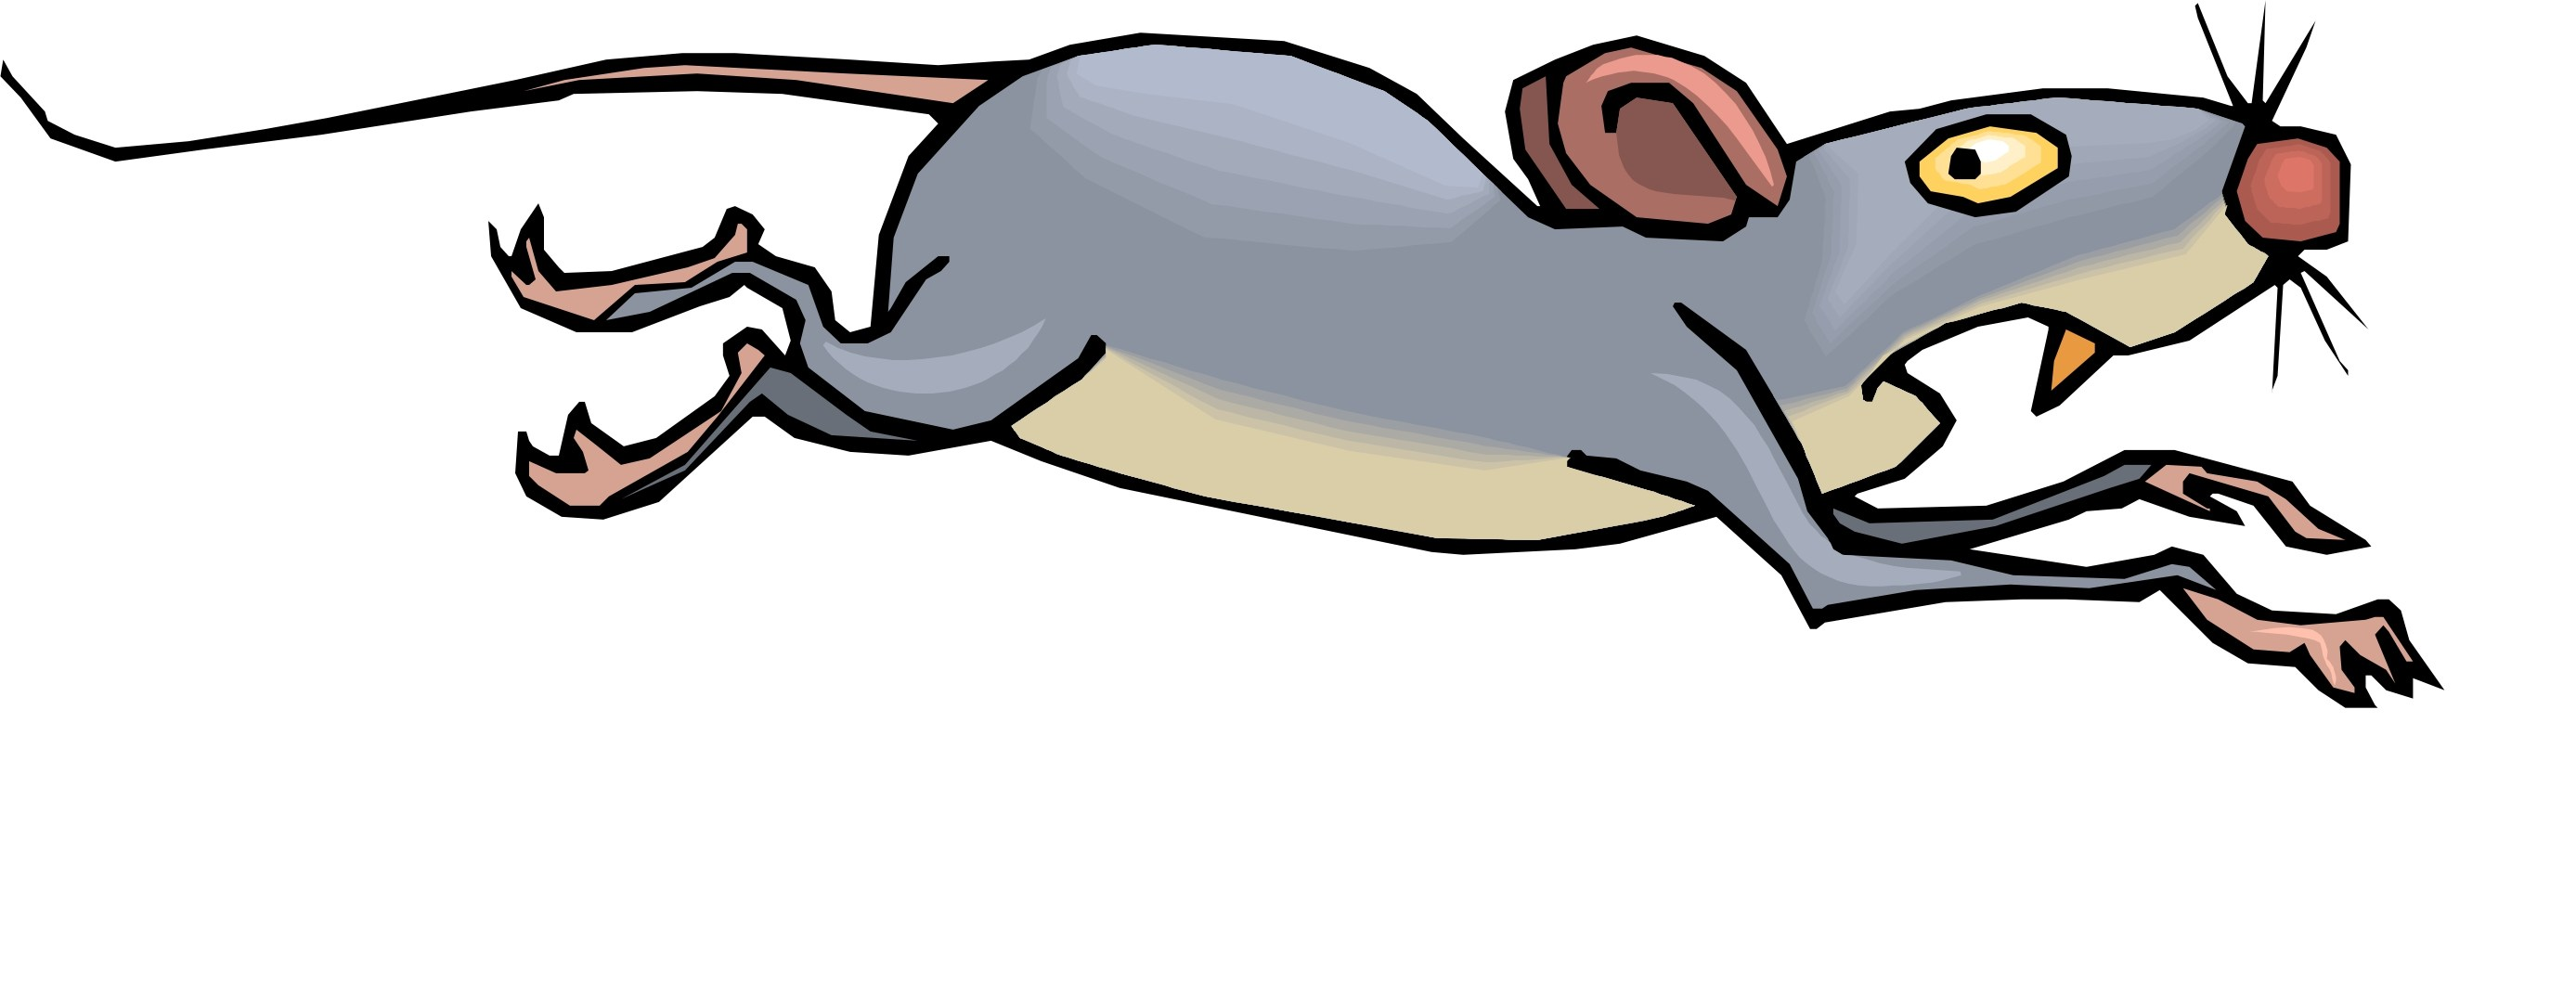 2775x1057 Cartoon With Mice And Rats